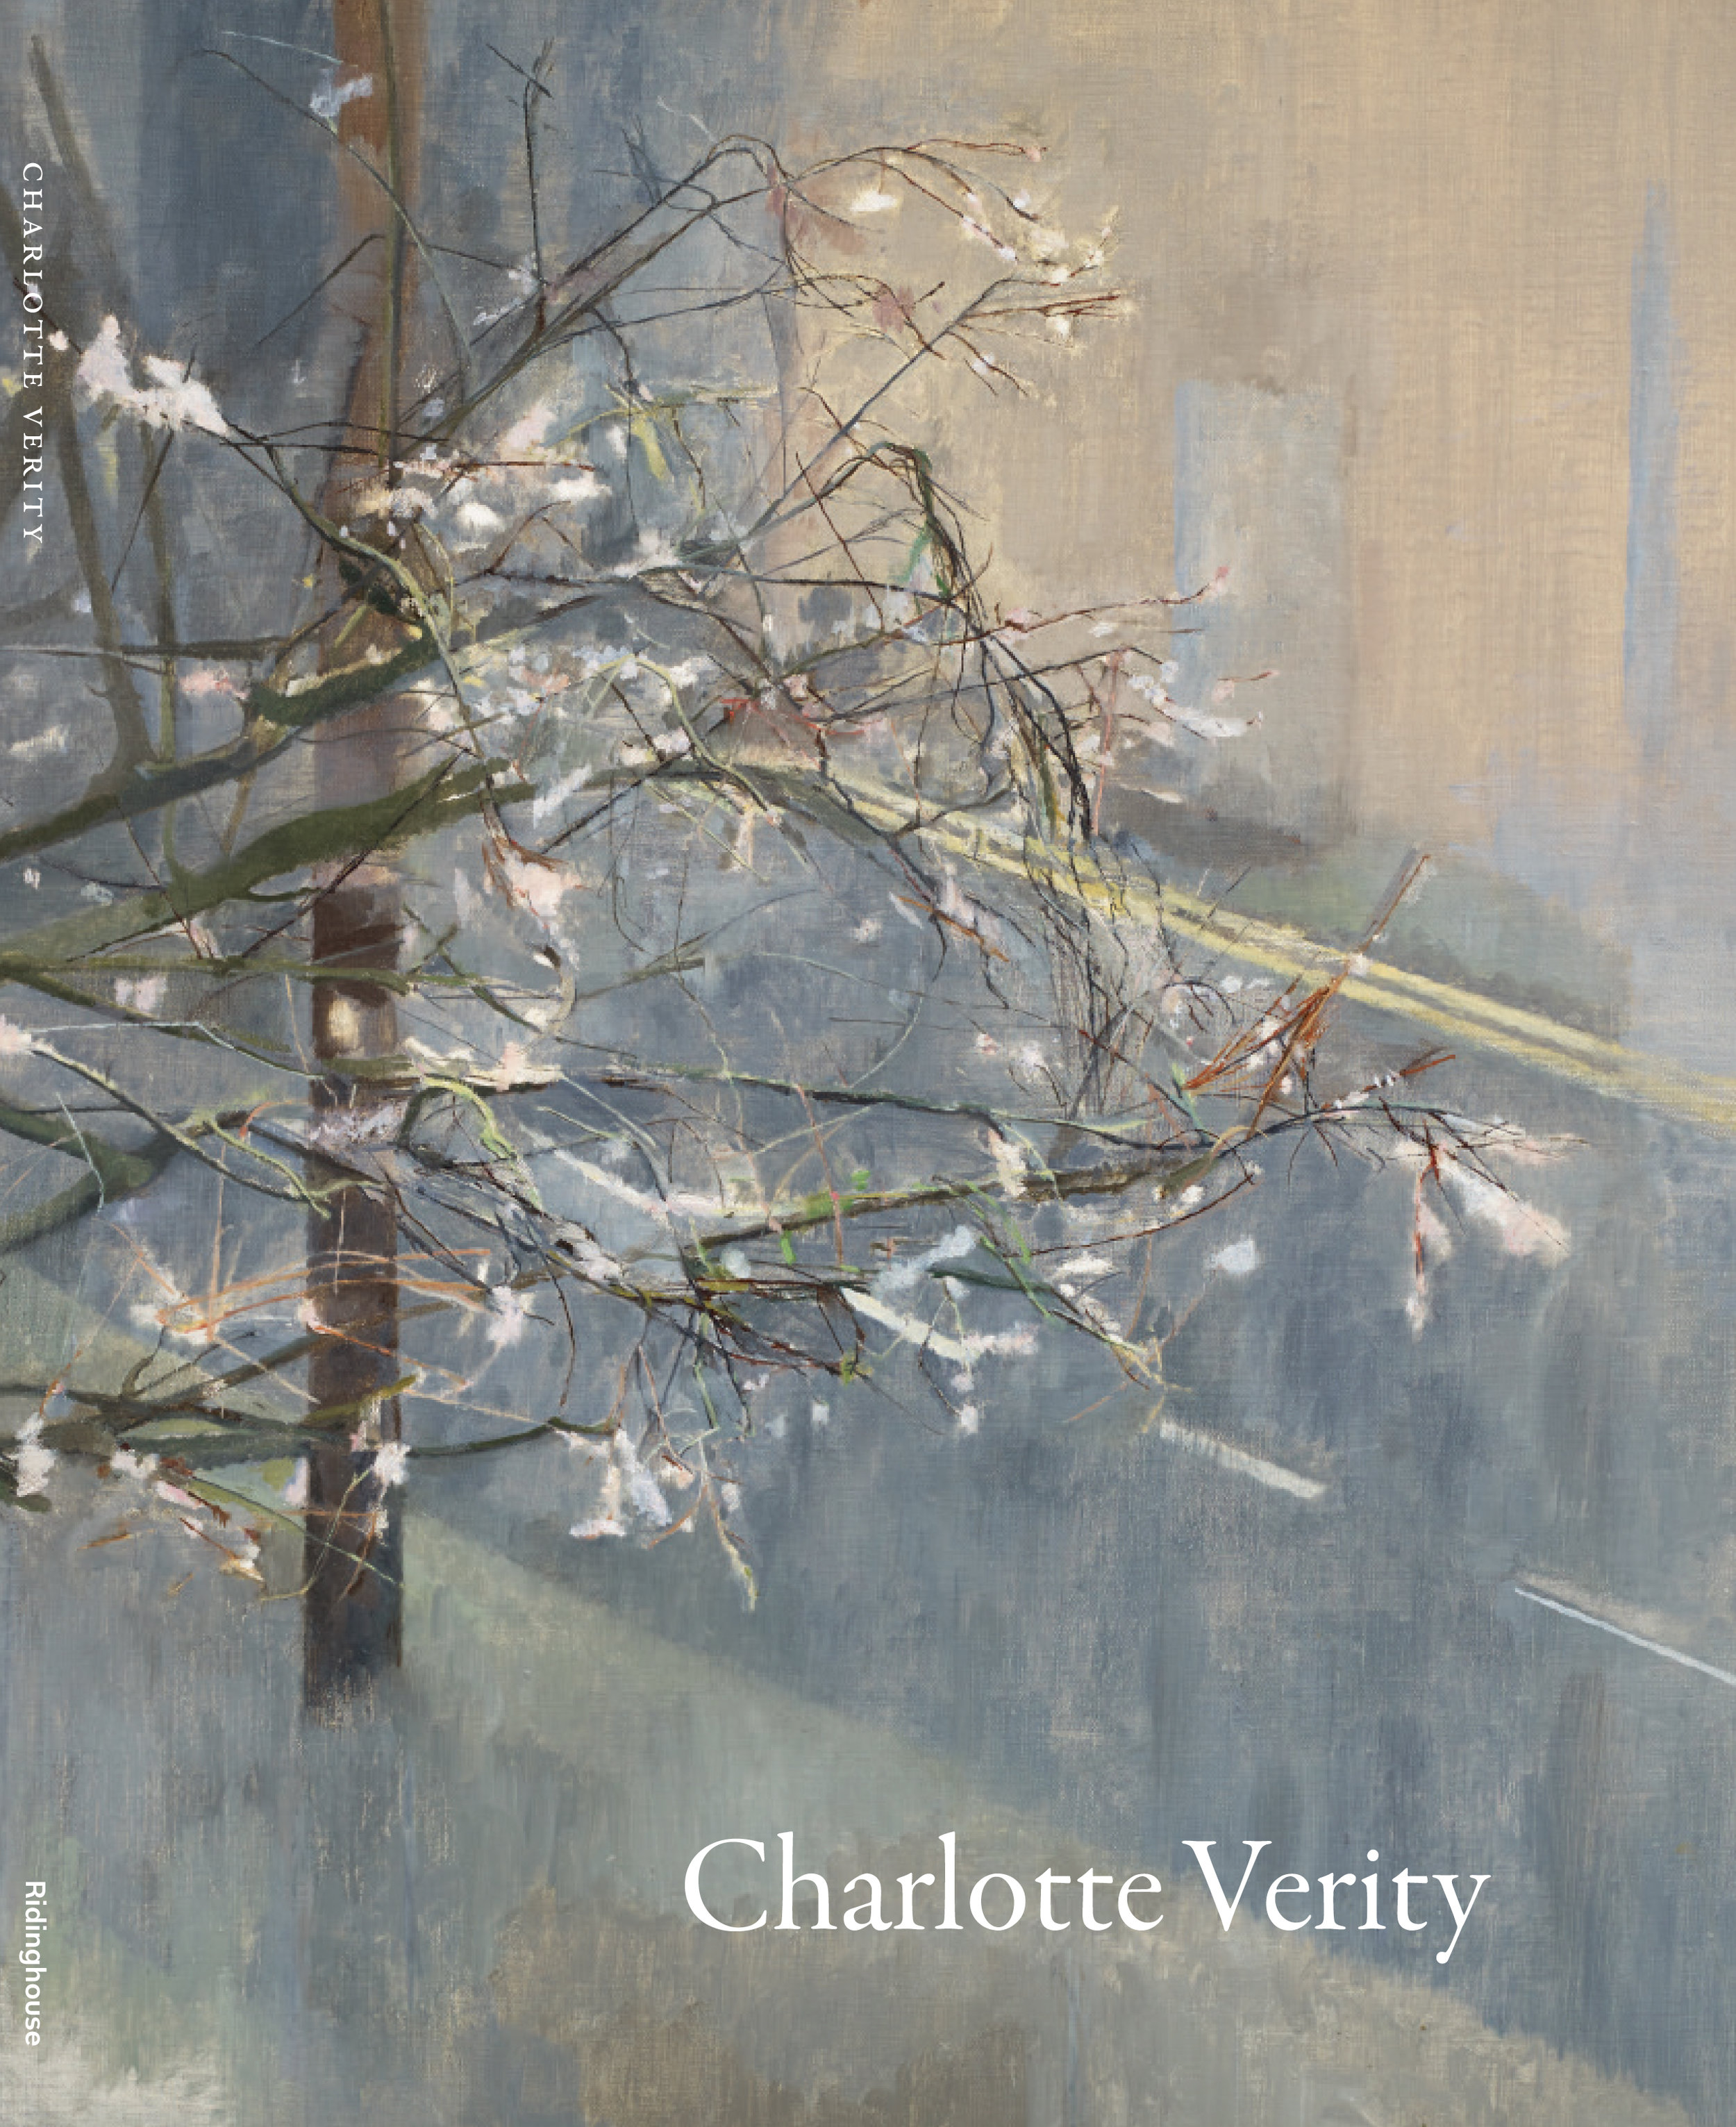 Charlotte Verity - Ridinghouse, 2016Essays by Edmund De Waal and Paul Hills, and the artist in conversation with Garry Fabian-MillerISBN: 978-1909932326 click above for essay texts